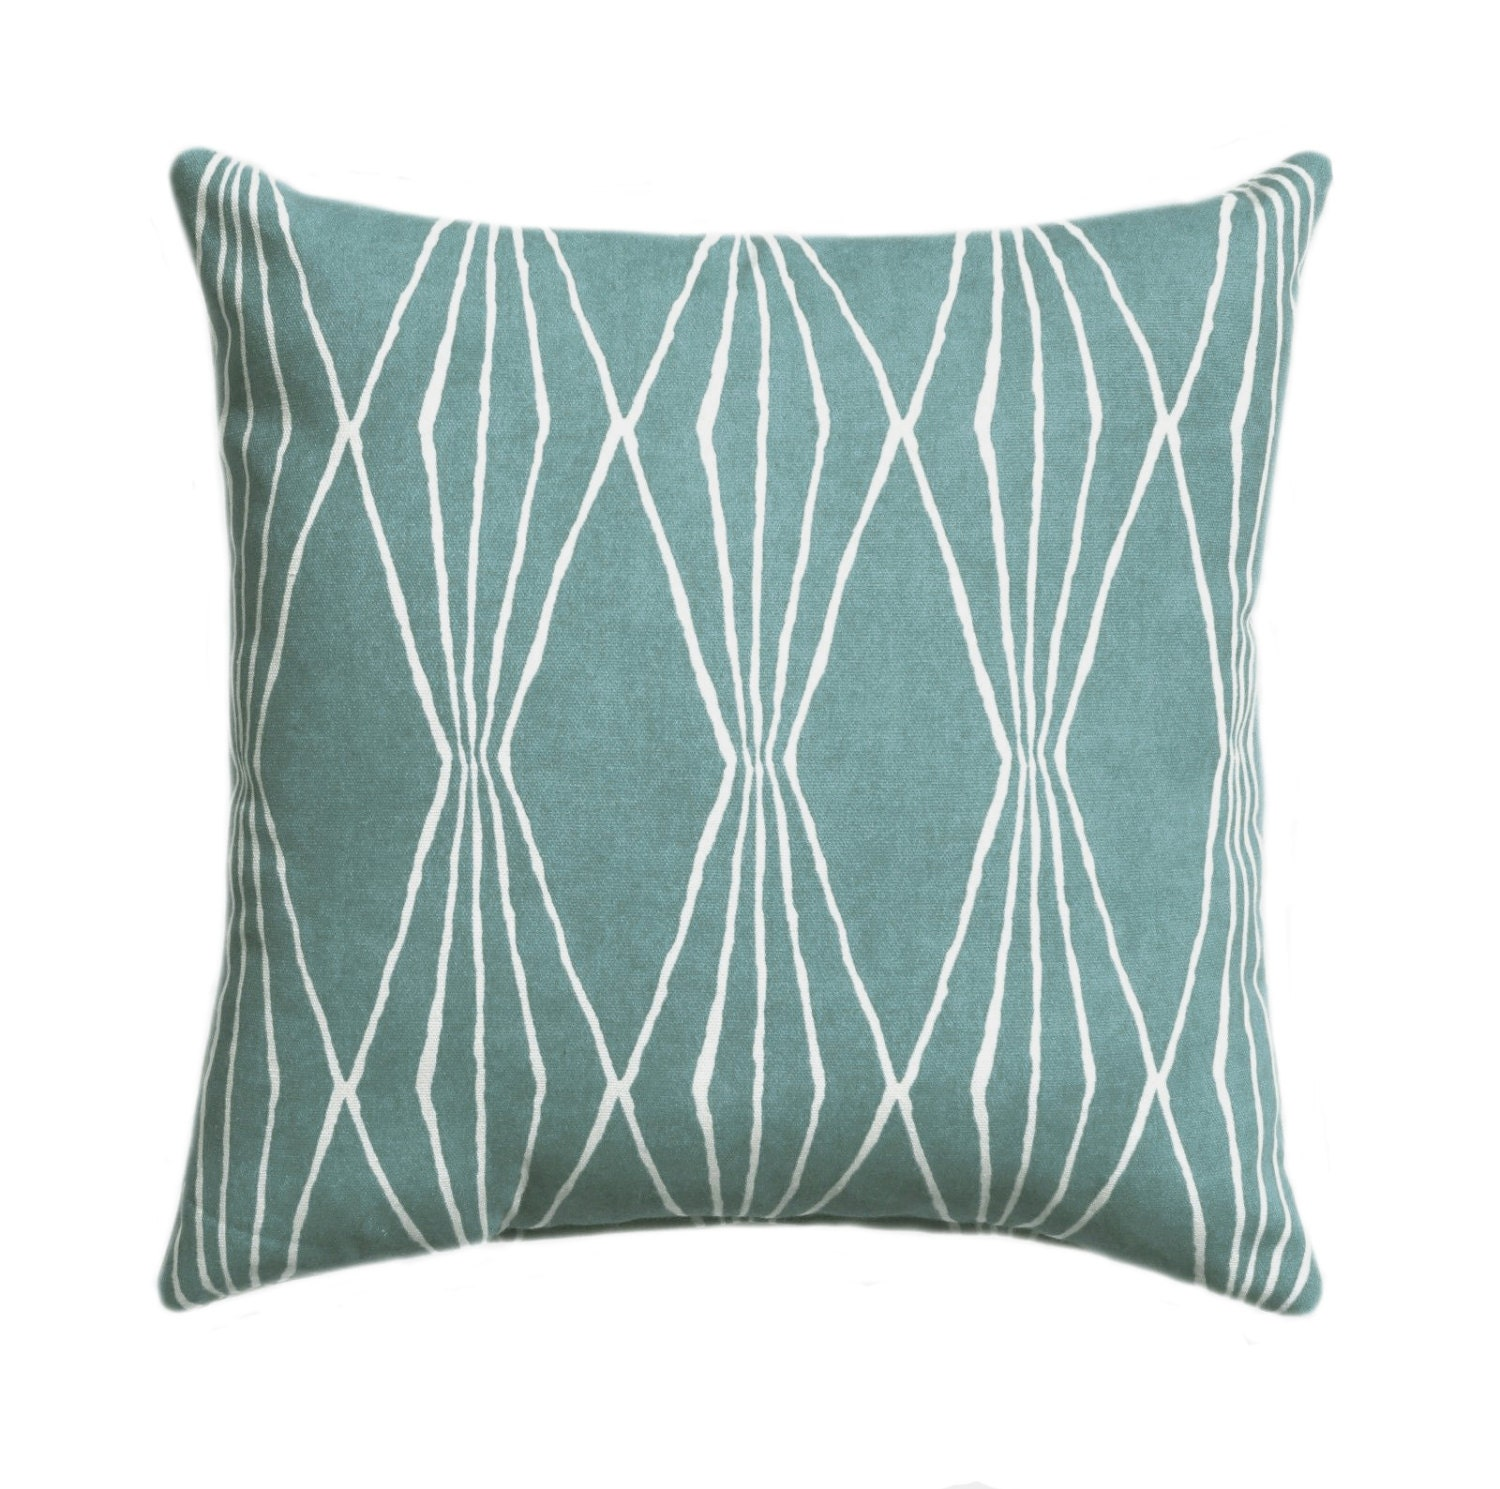 Robert Allen Handcut Shapes Rain Geometric Decorative Pillow